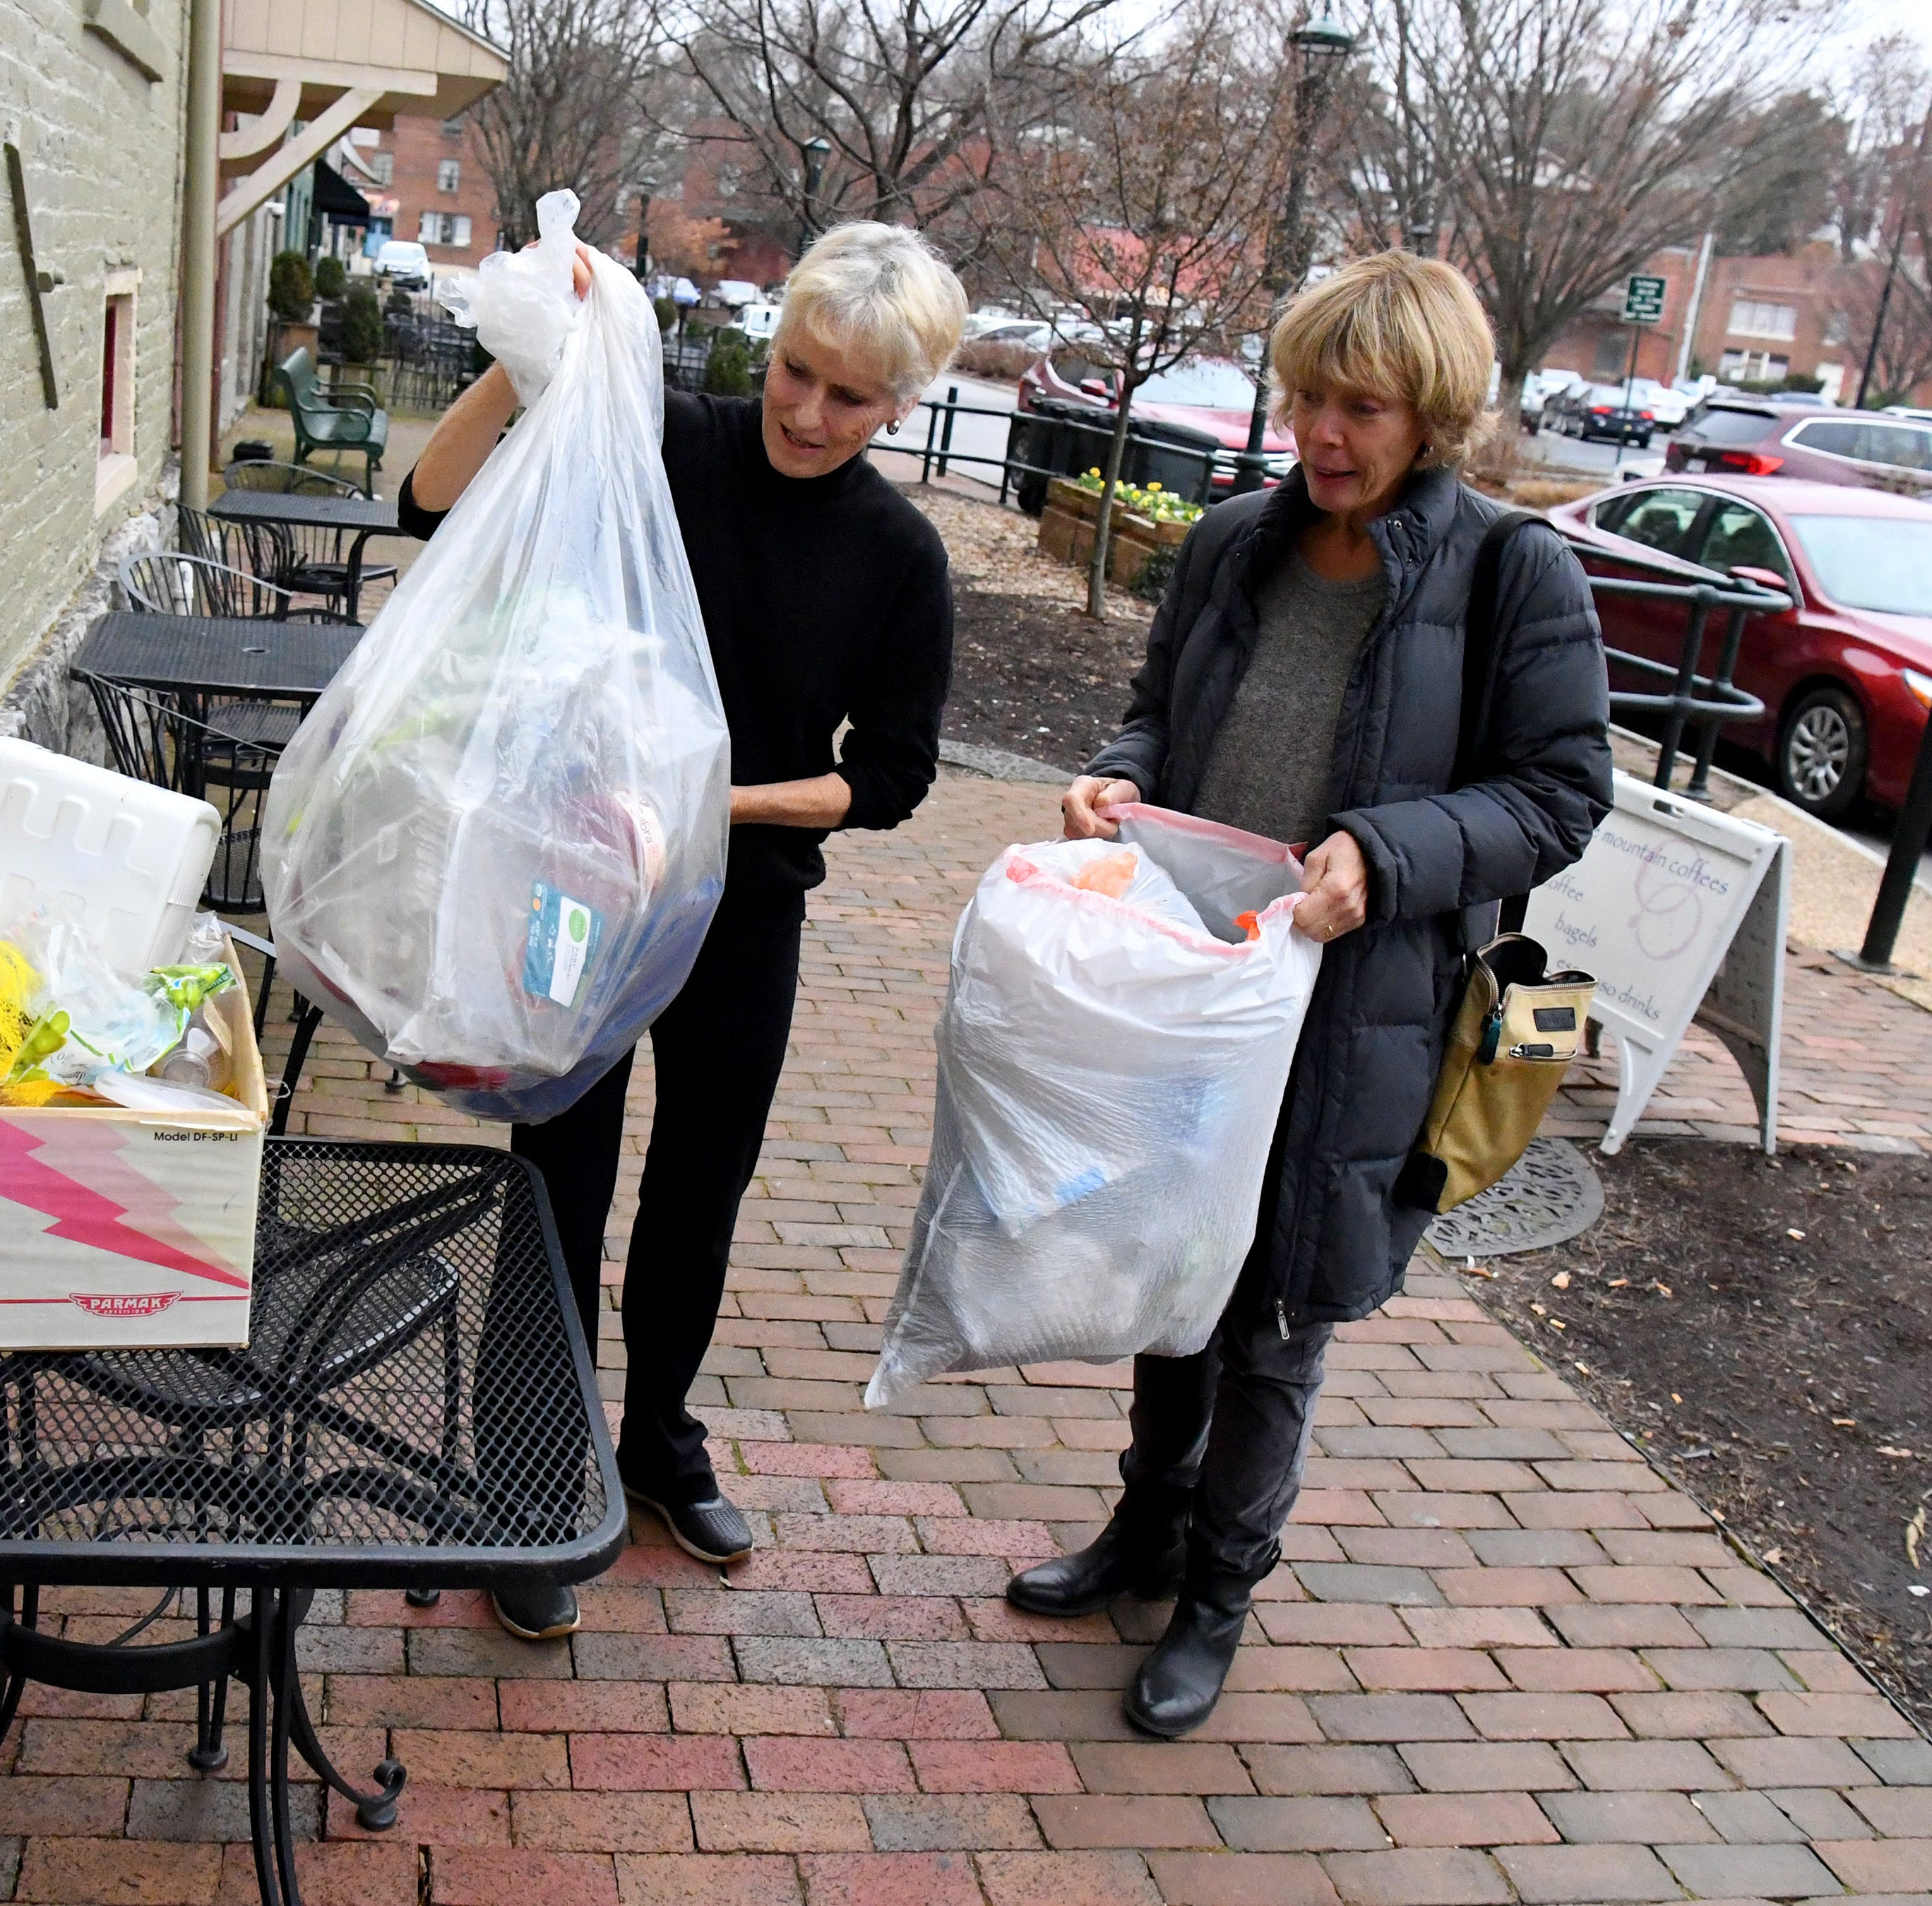 Community group aims to reduce plastic use in the Shenandoah Valley; promotes green solutions